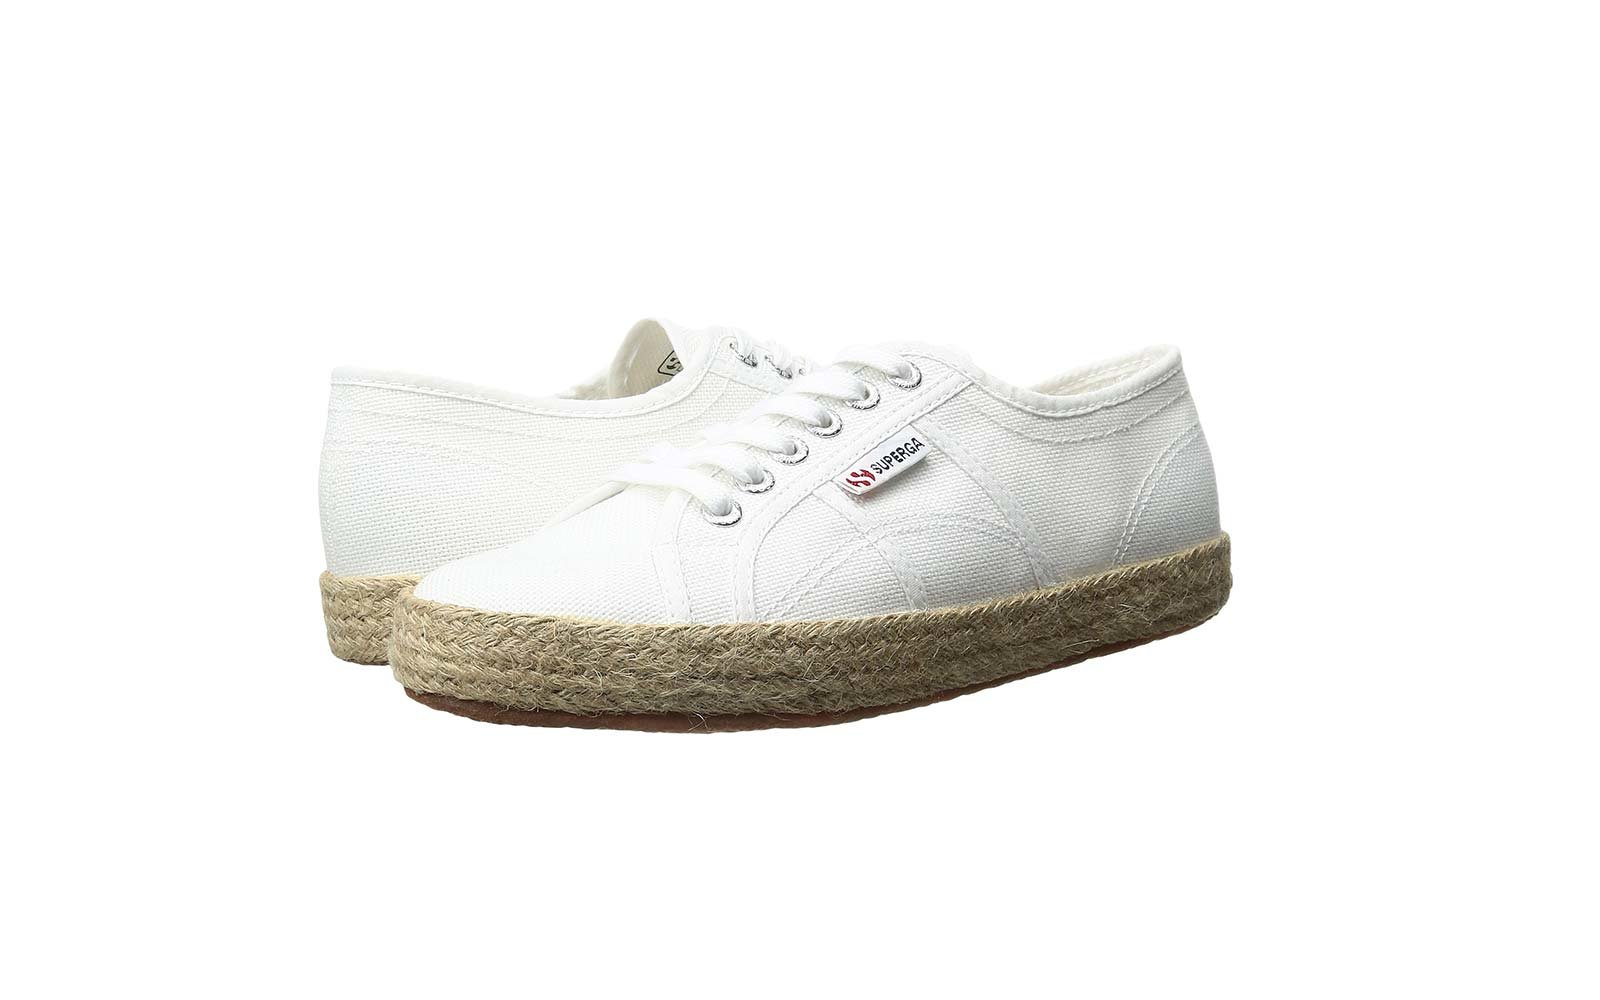 Superga 2750 Cotropew Sneakers